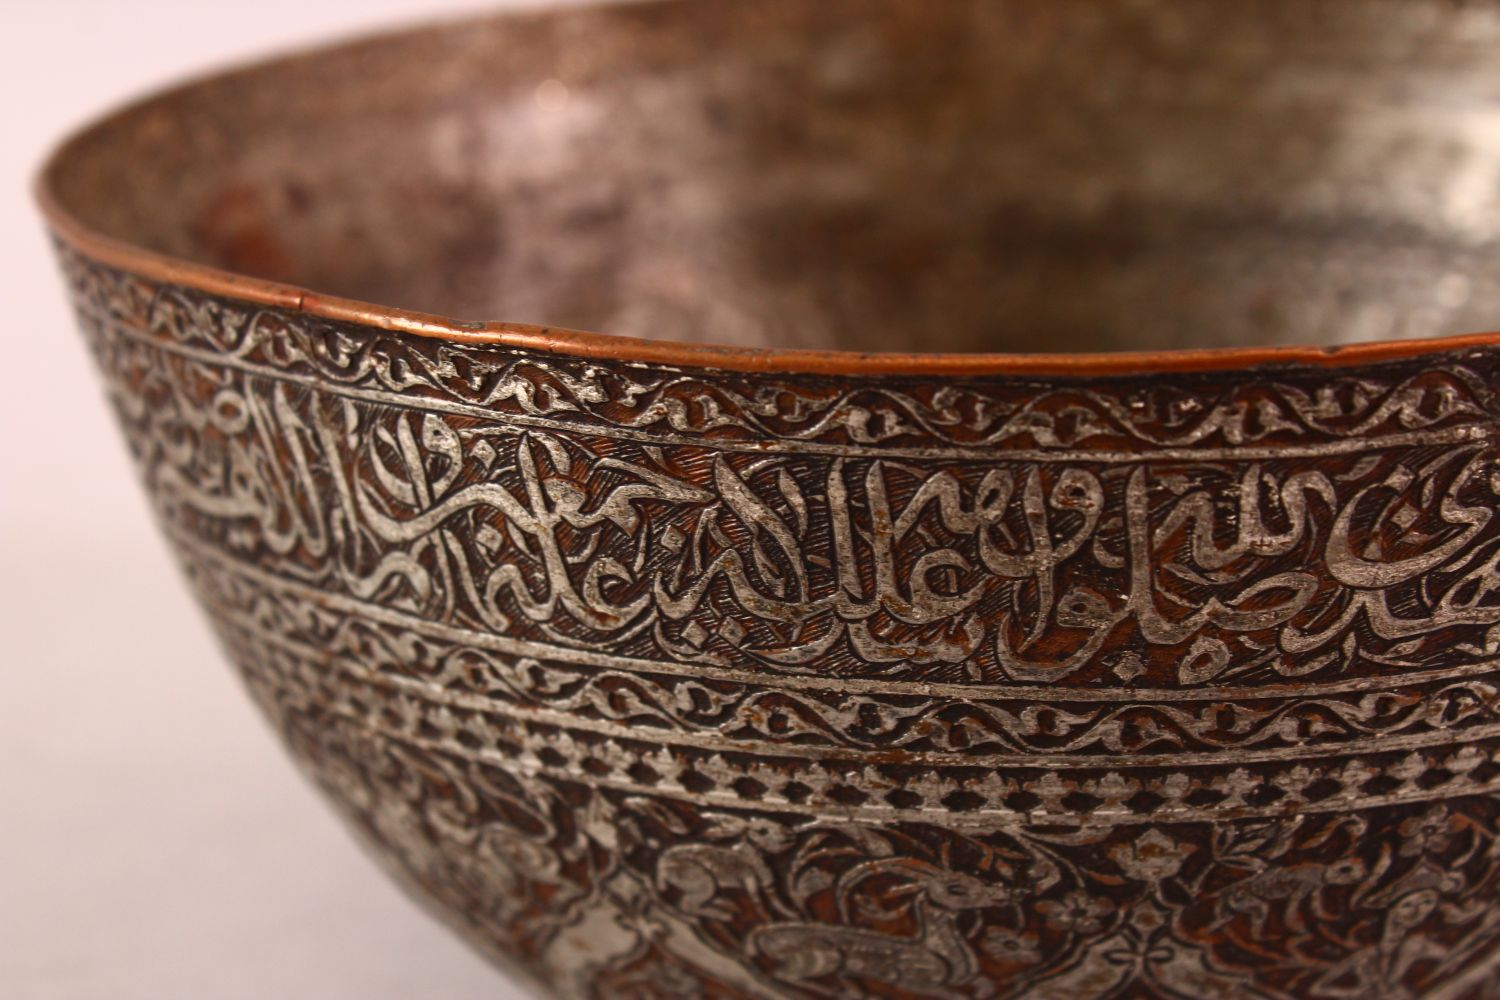 A GOOD ZANDI TINNED COPPER ENGRAVED CALLIGRAPHIC BOWL, with bands of calligraphy, 19cm diameter, - Image 3 of 6